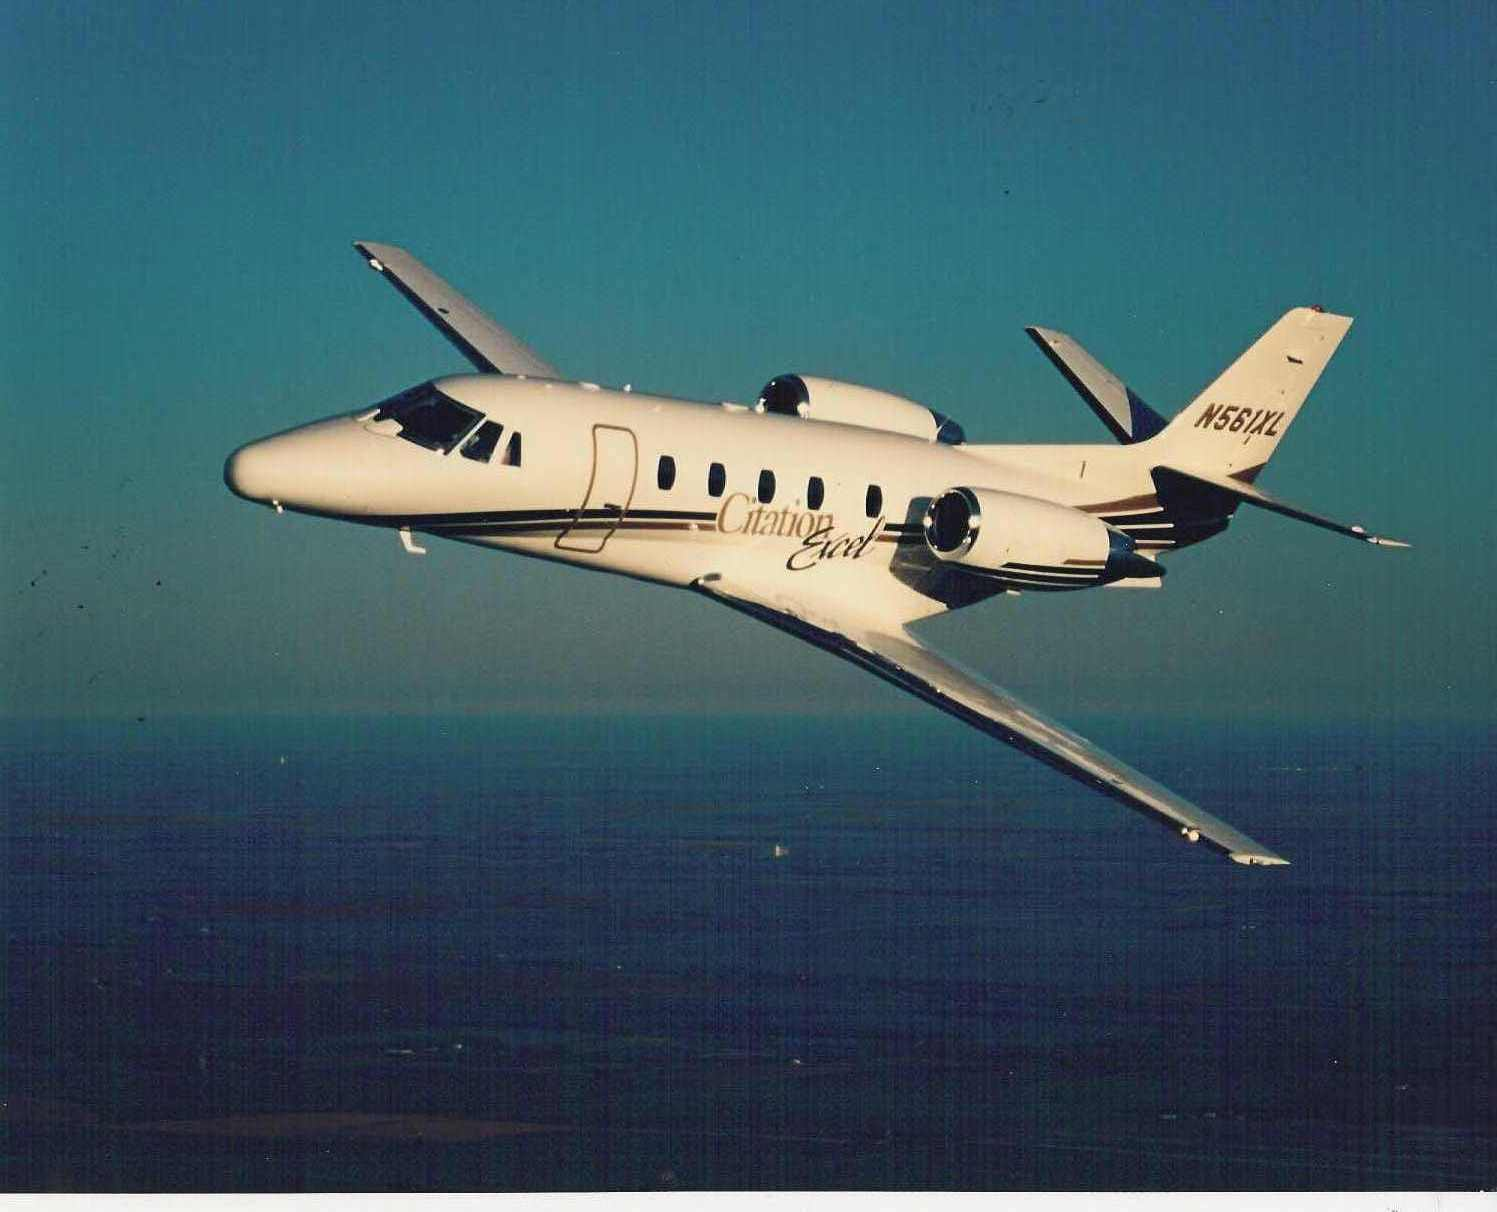 general aviation aircraft value analysis The cessna 210 centurion is a six-seat, high-performance, retractable-gear, single-engine, high-wing general aviation aircraft which was first flown in january 1957 and produced by cessna.